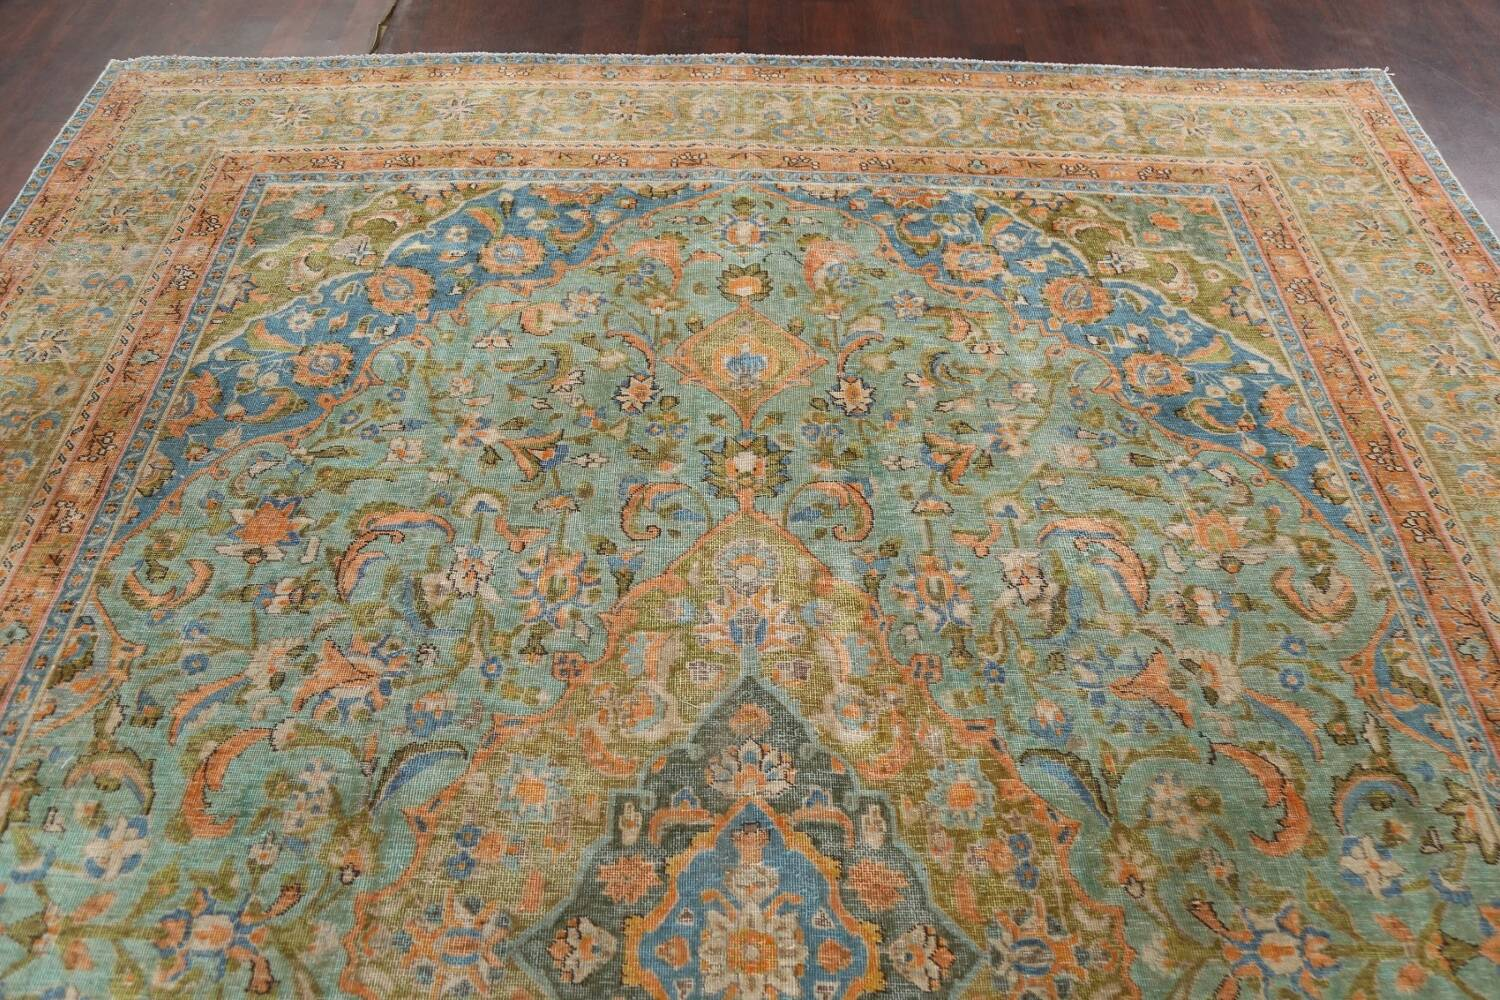 Antique Distressed Over-Dye Kashan Persian Area Rug 9x12 image 13